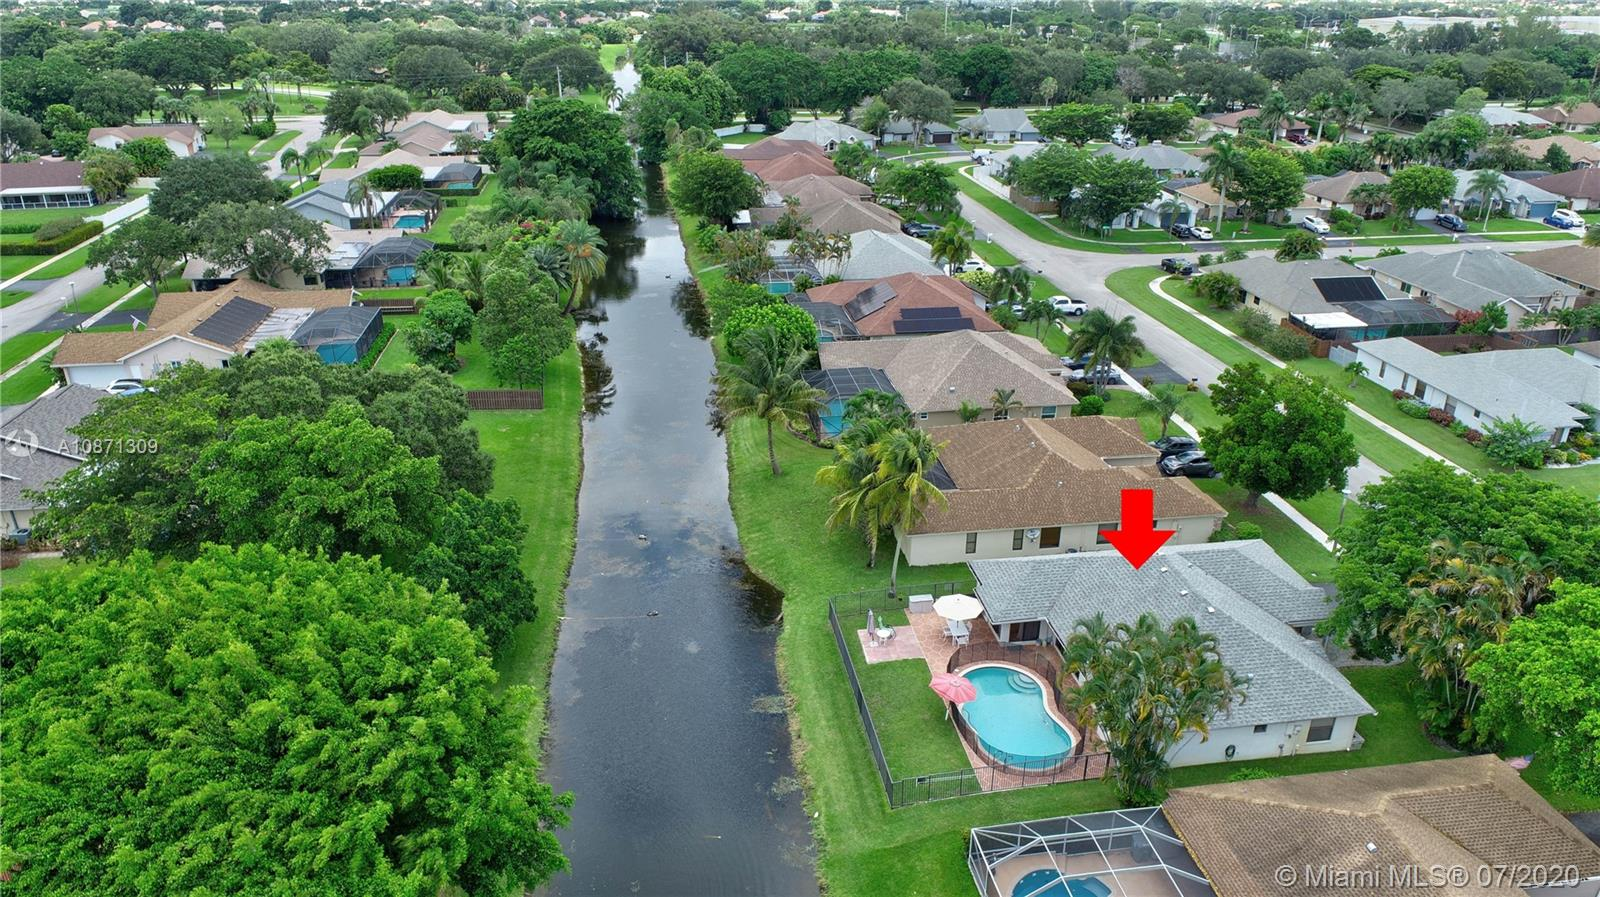 Listing A10871309 - Large Photo # 42